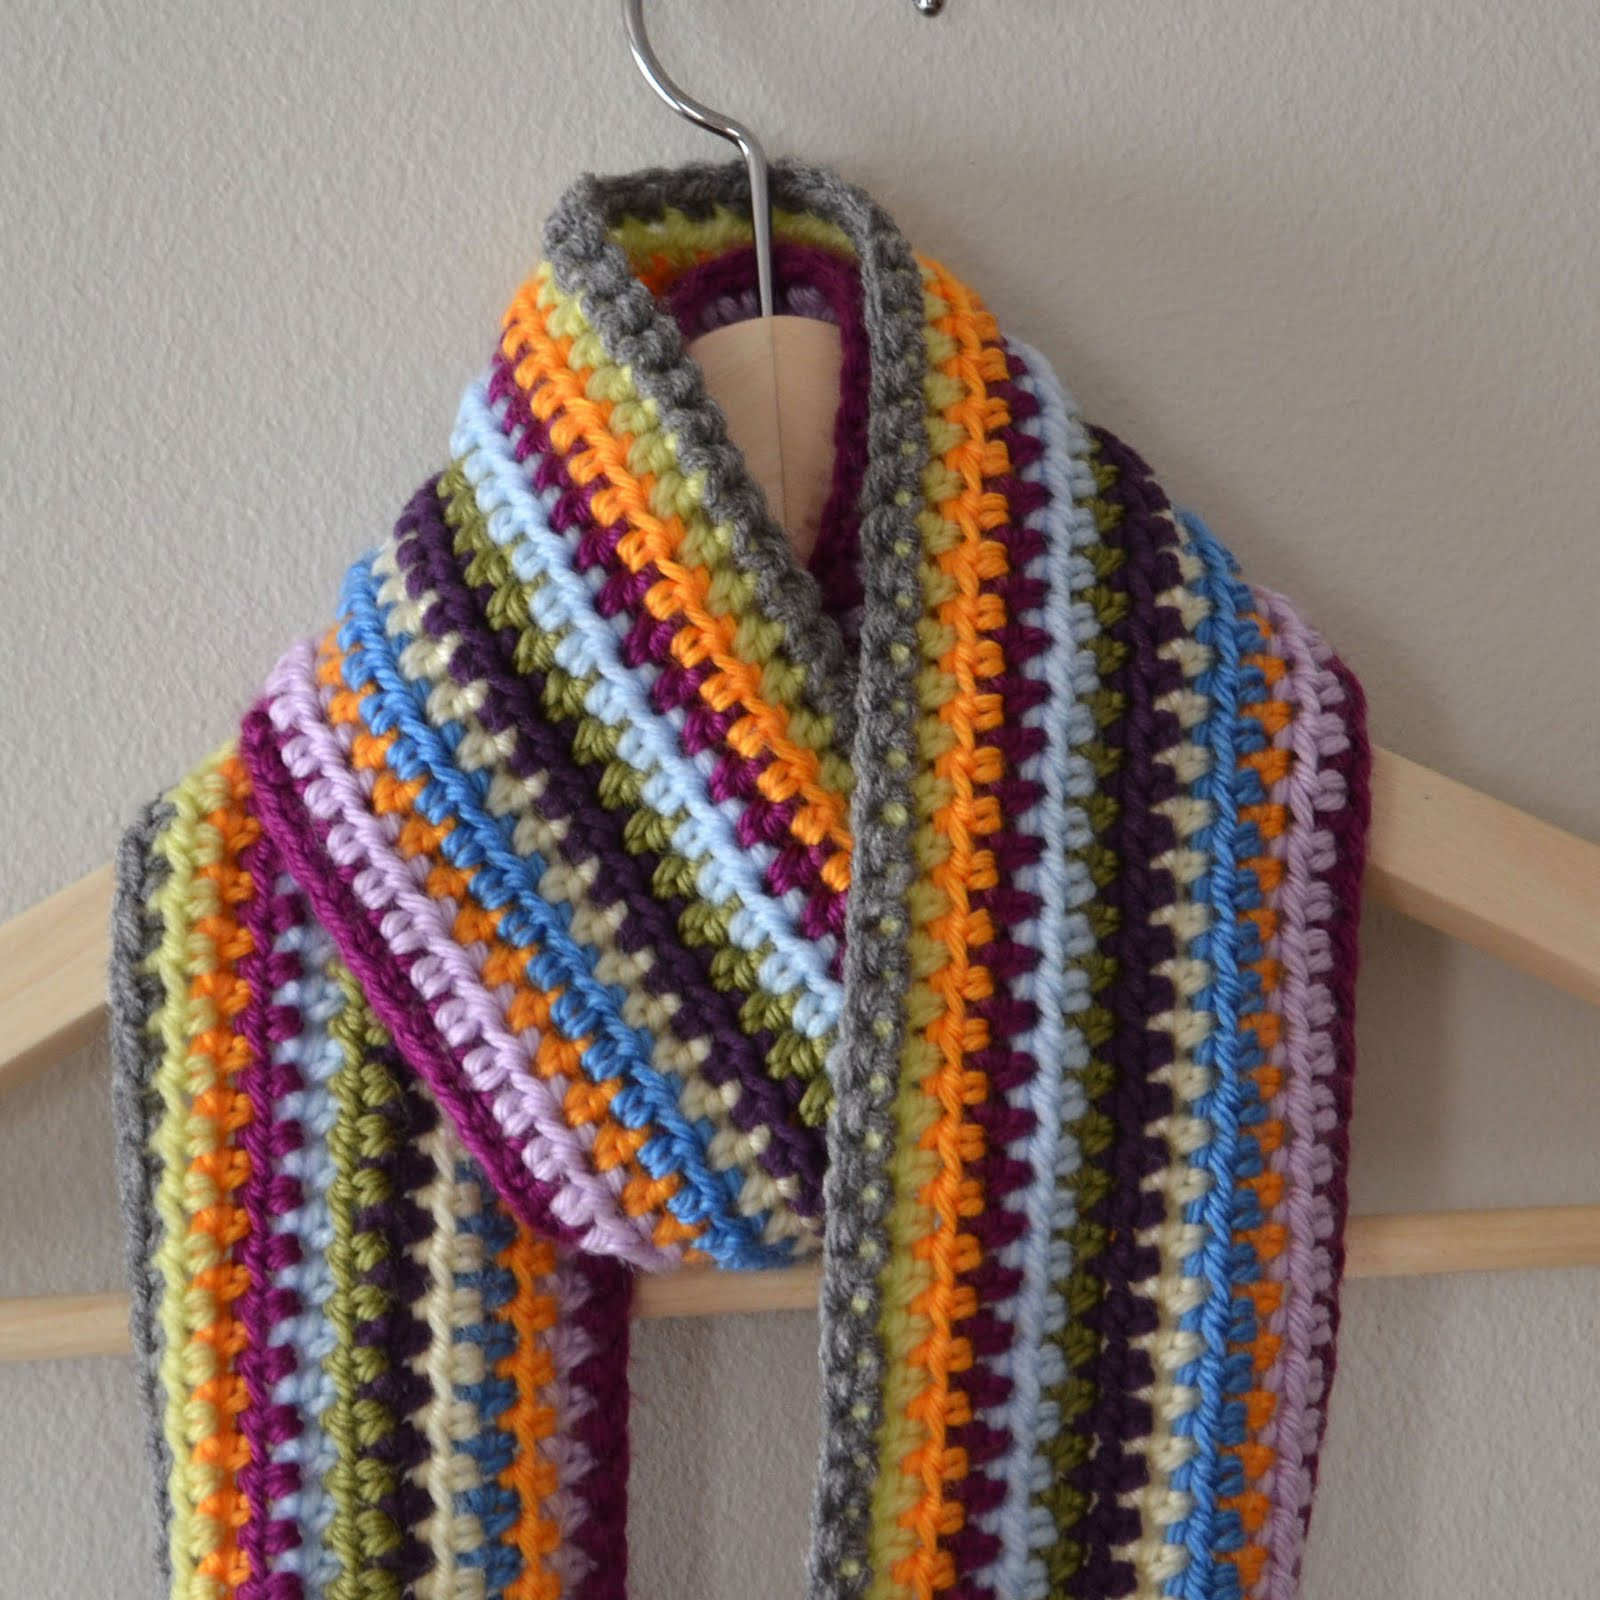 Scarf Crochet Awesome Crochet In Color Scrapadelic Scarf Of Innovative 47 Pictures Scarf Crochet